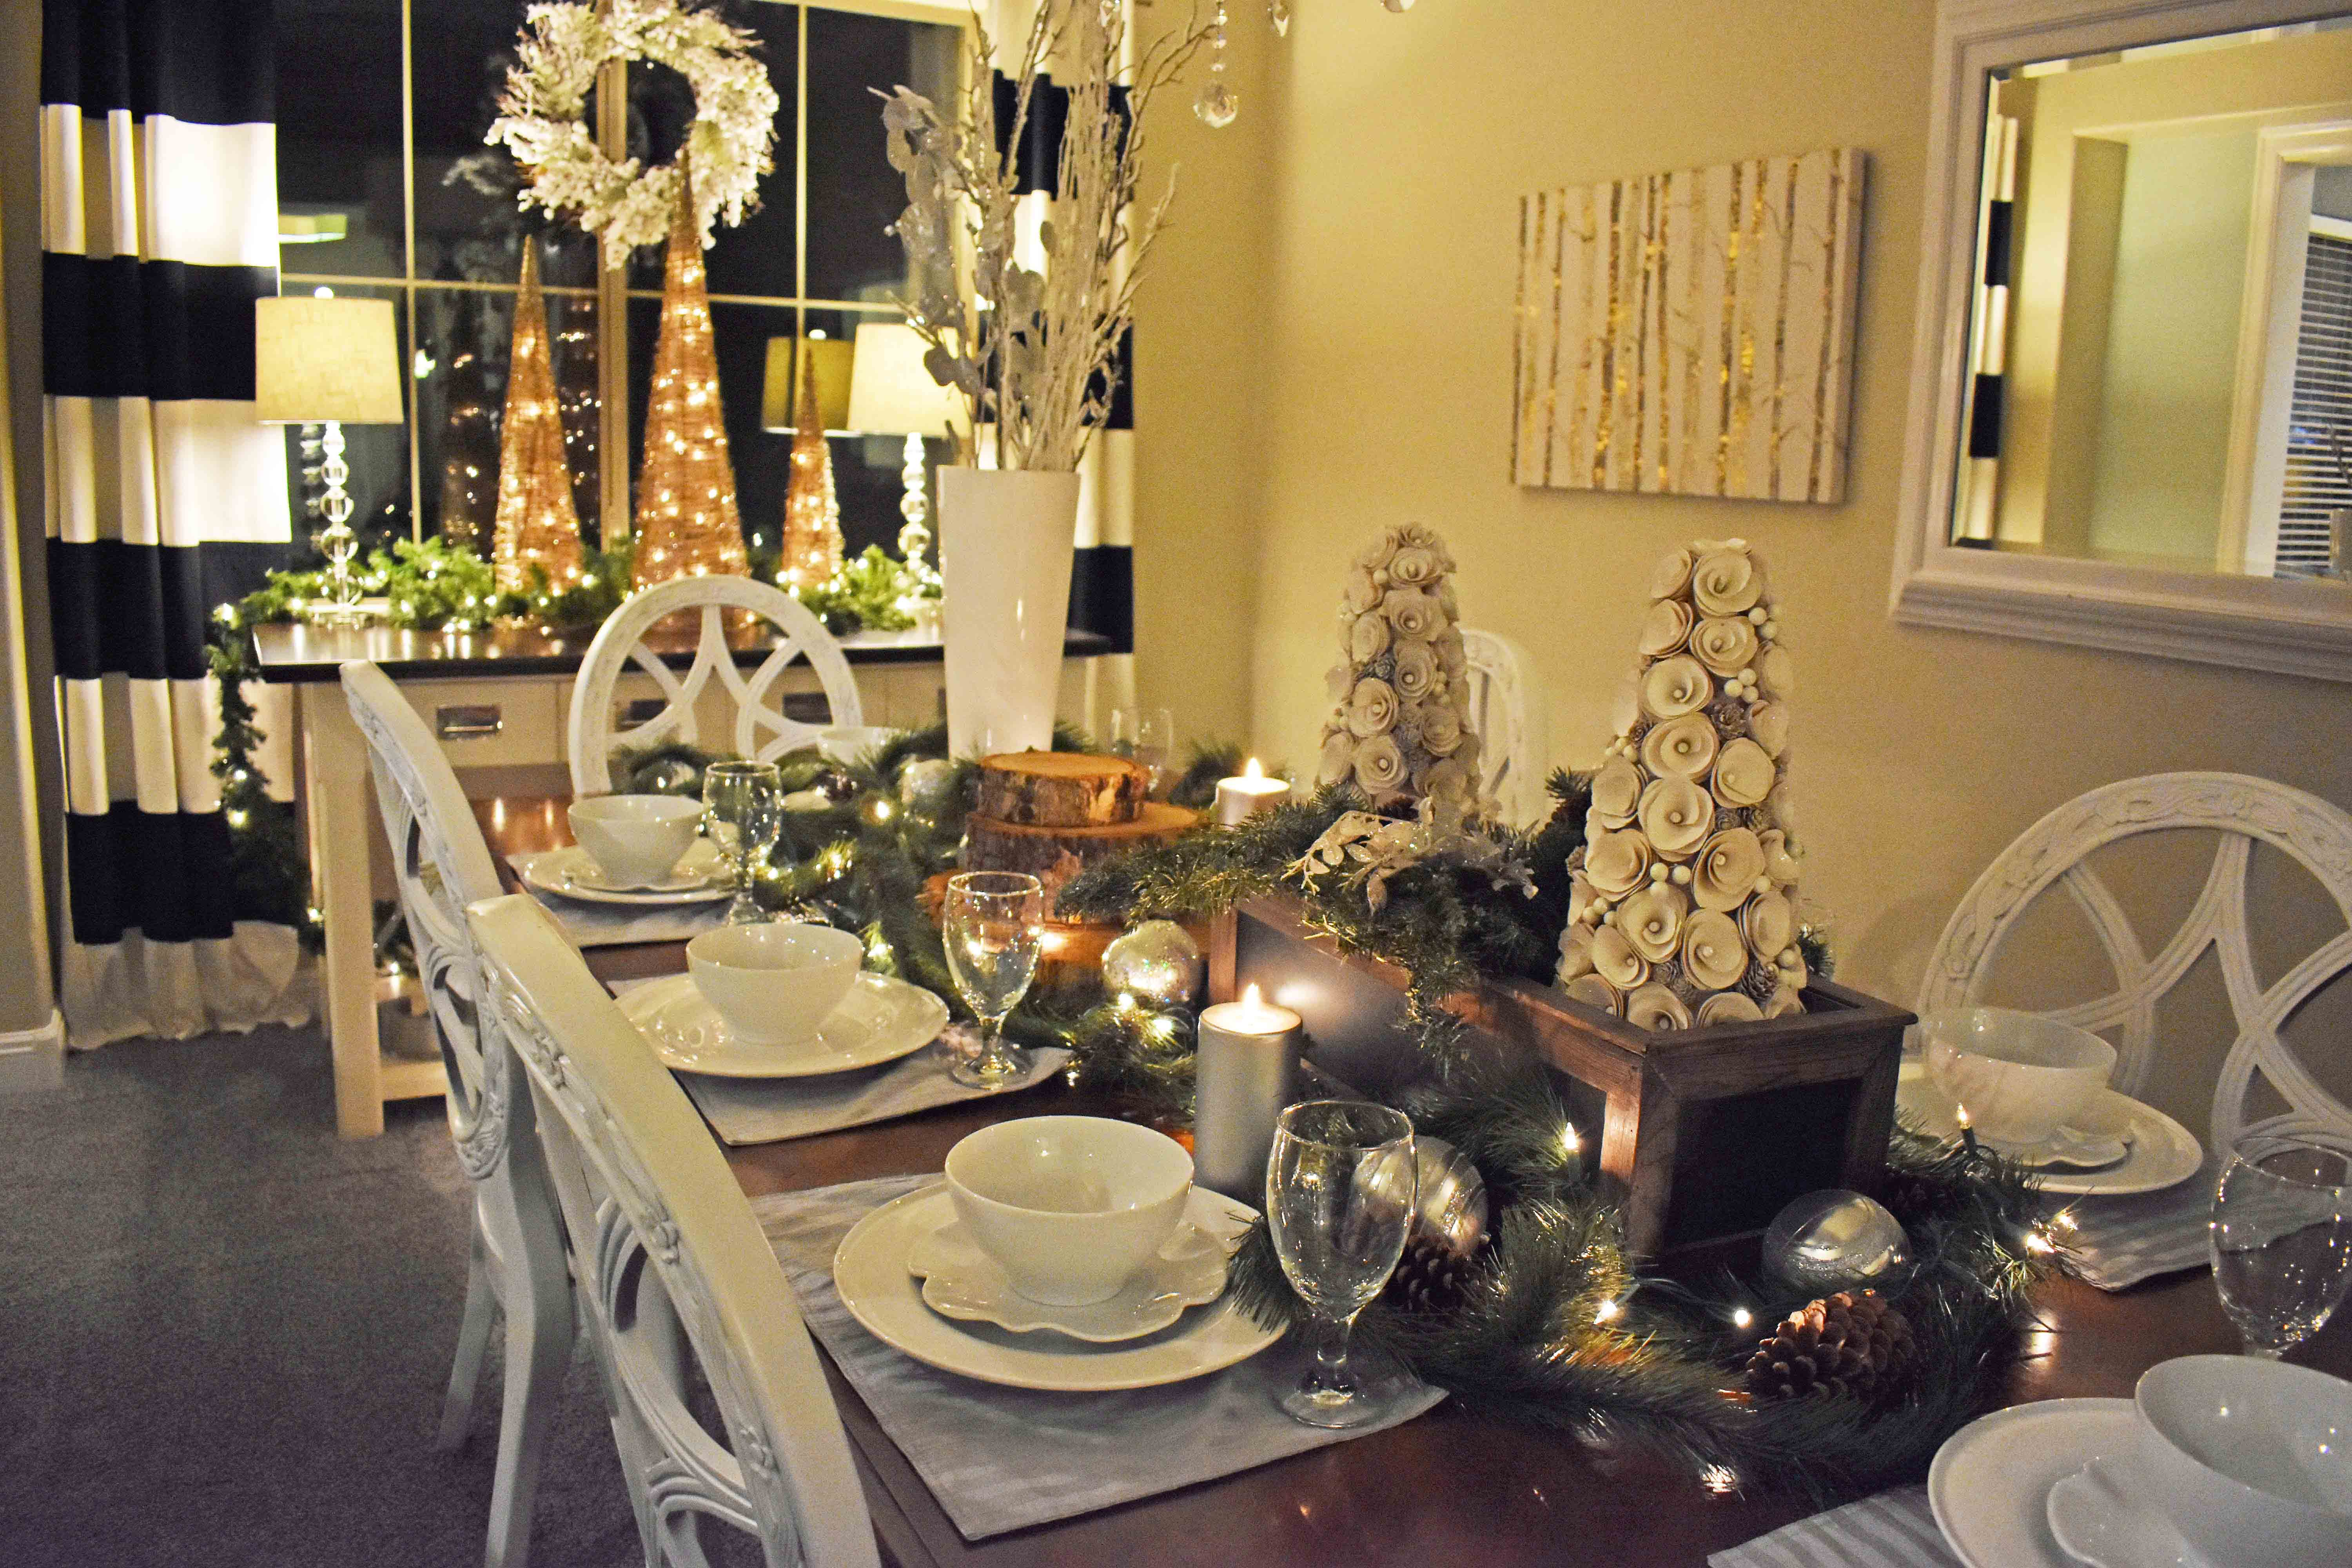 Christmas Tablescapes Ideas. Christmas Dining Room. Natural Christmas decor. www.modernhoney.com